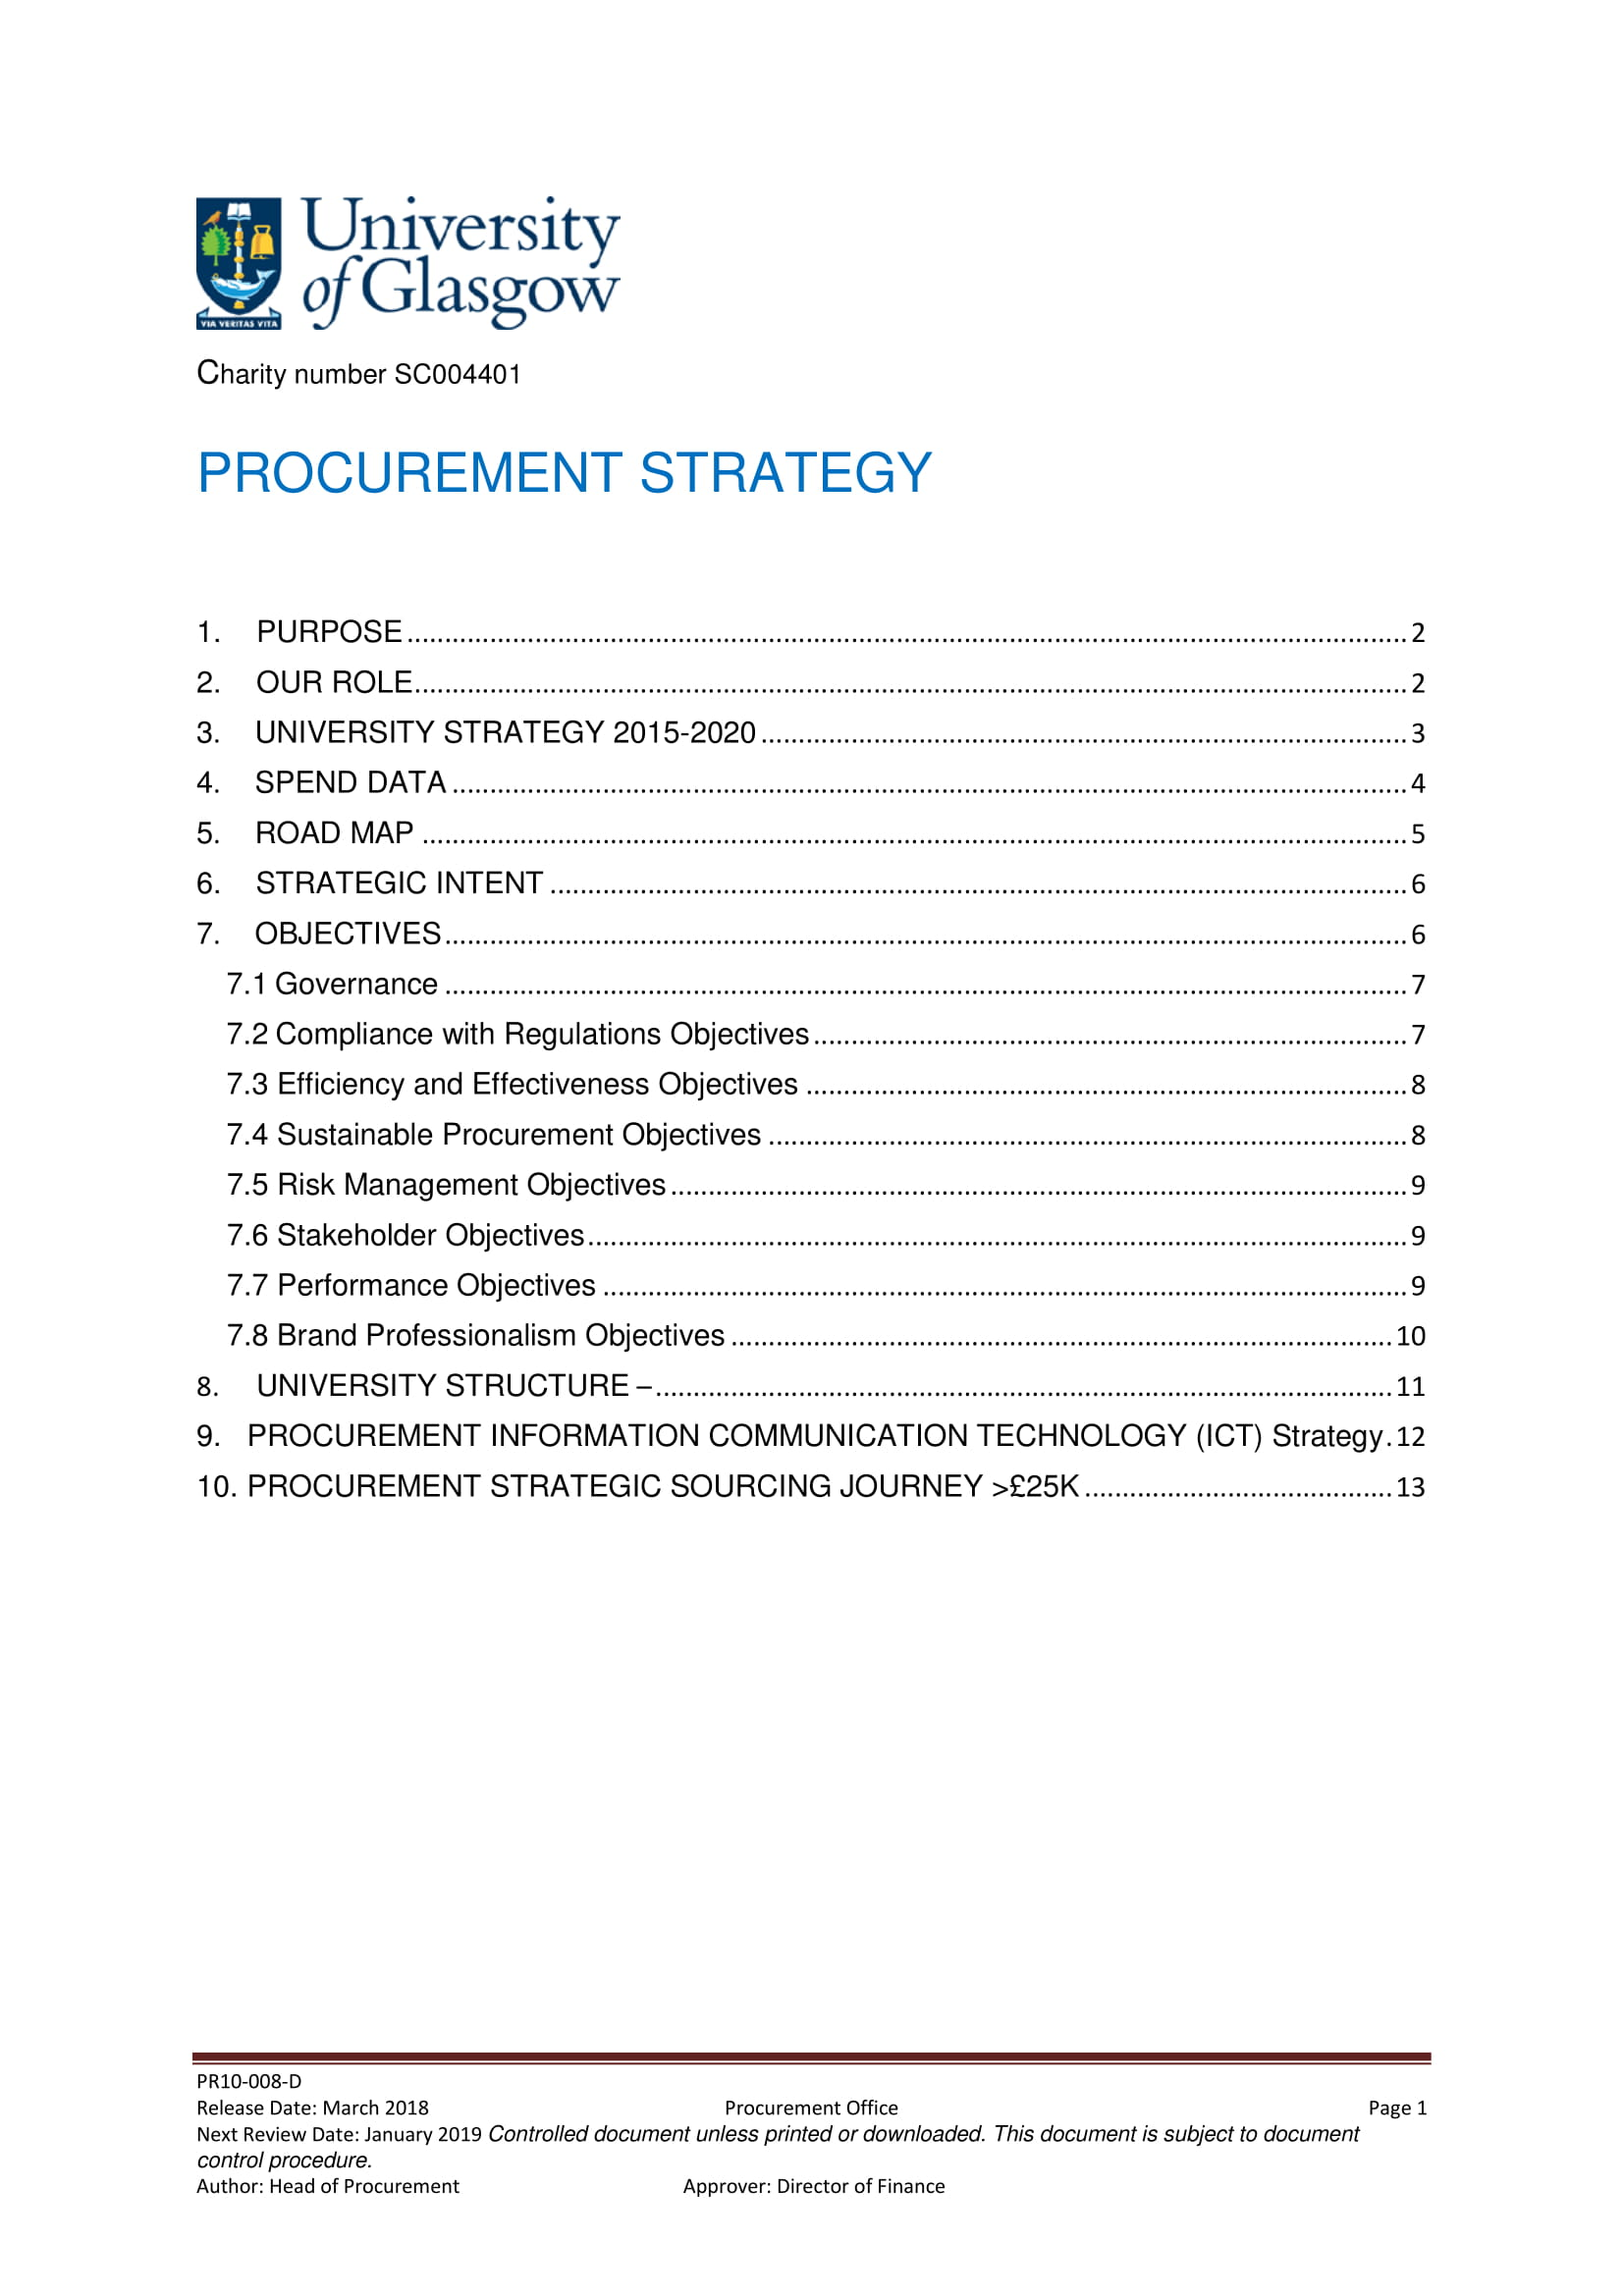 procurement strategy plan example 01